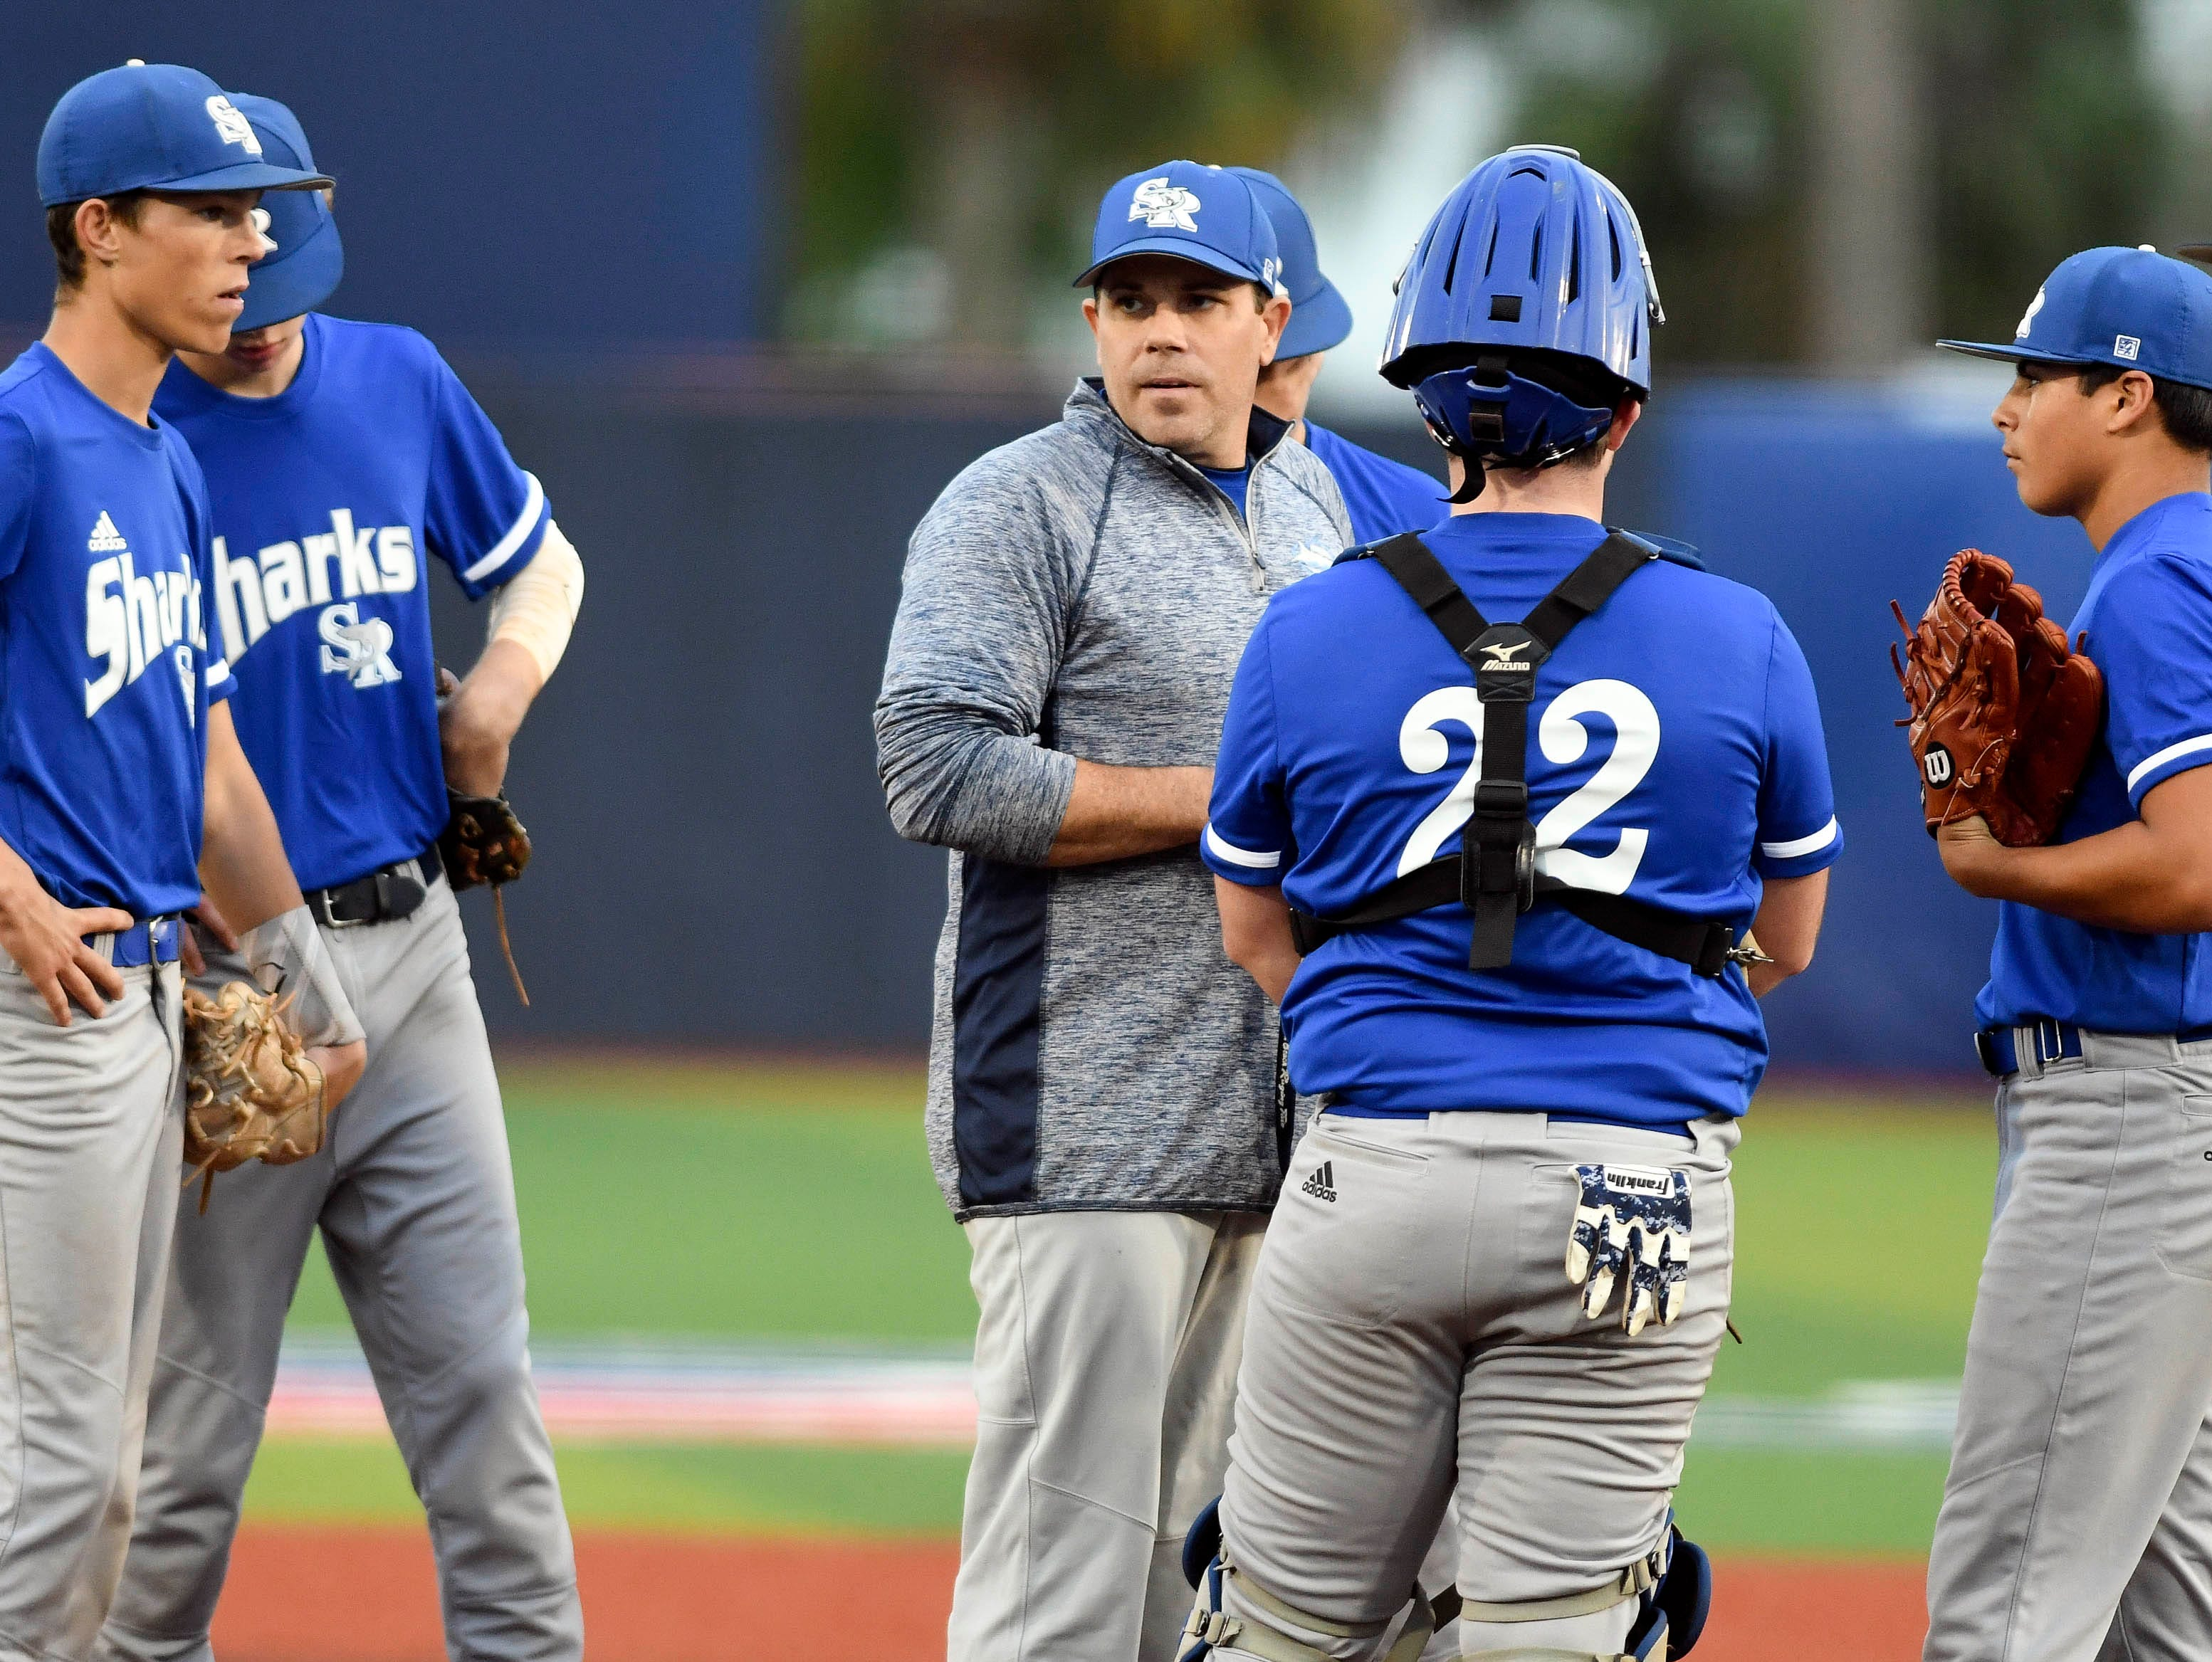 Sebastian River baseball coach talks with his team during Wednesday's game against Viera at USSSA Space Coast Stadium.